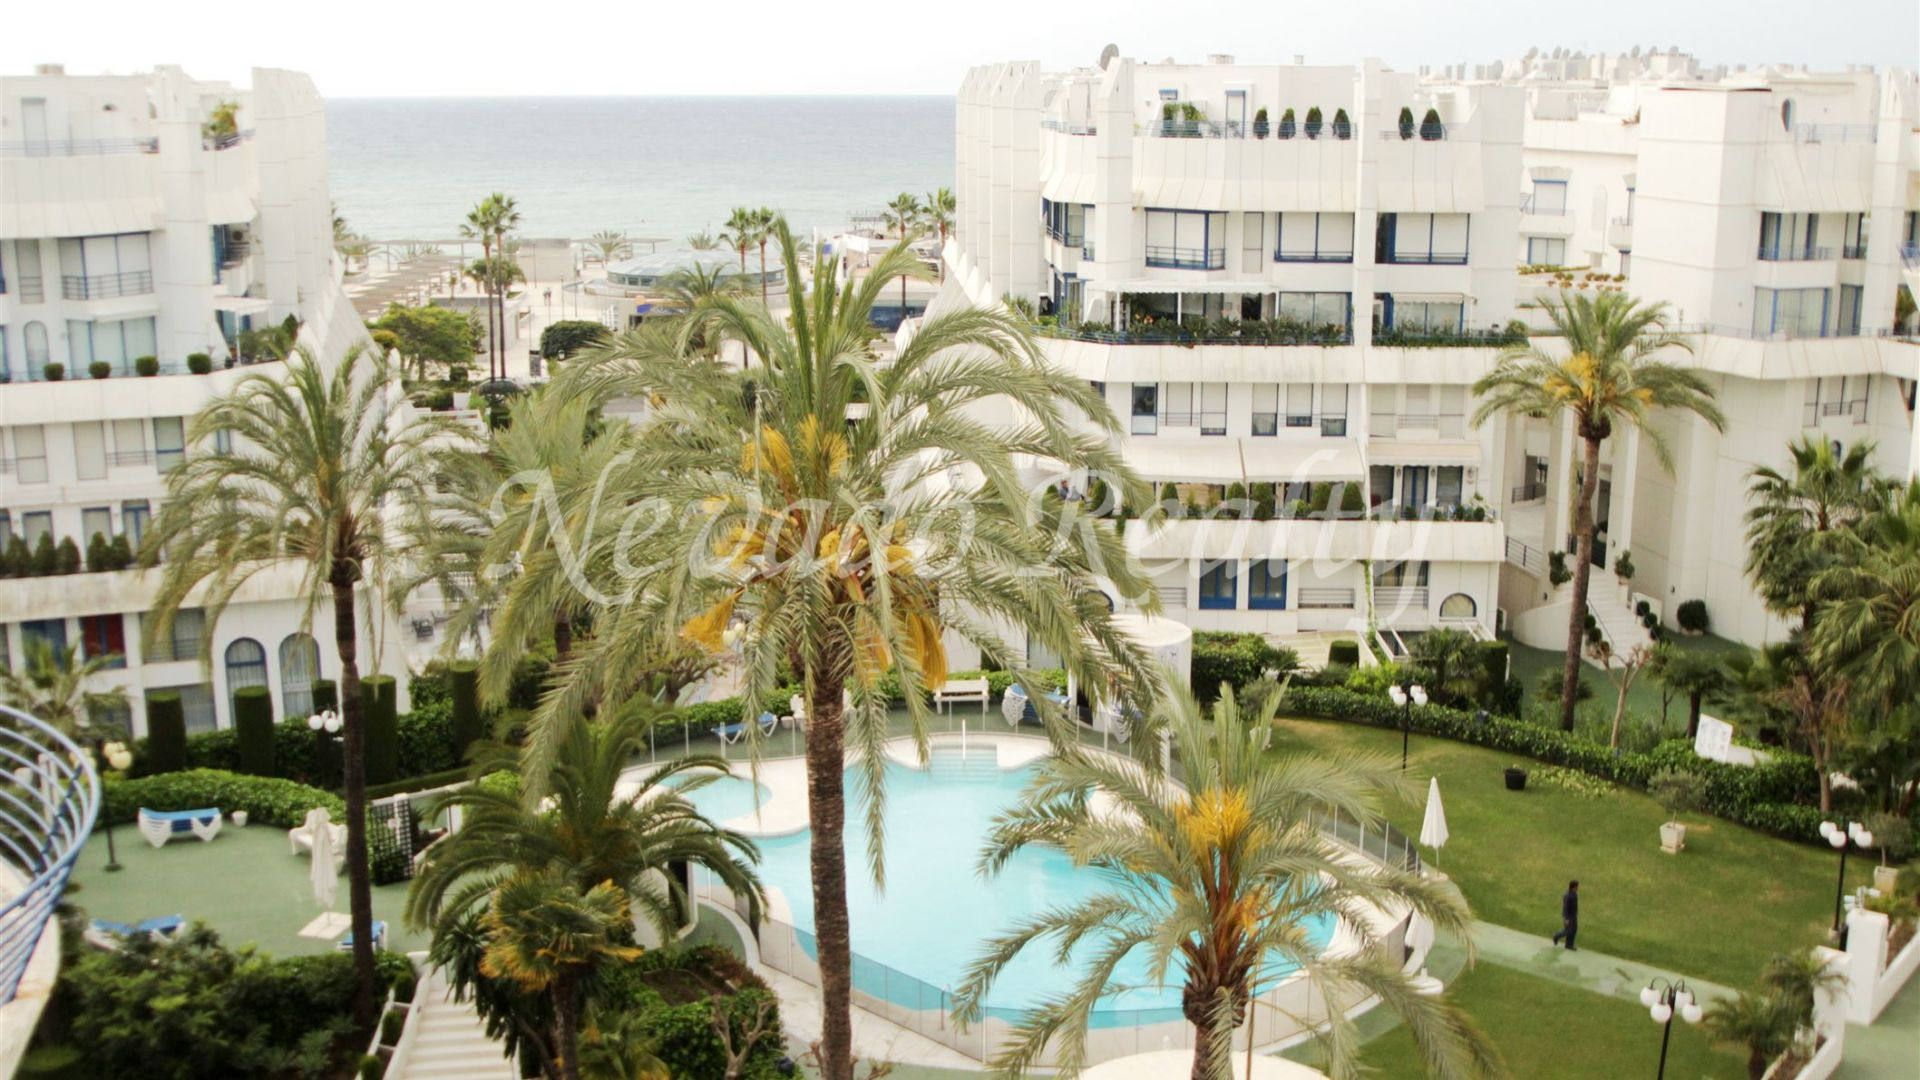 Penthouses for sale in Marbella House, in Marbella town